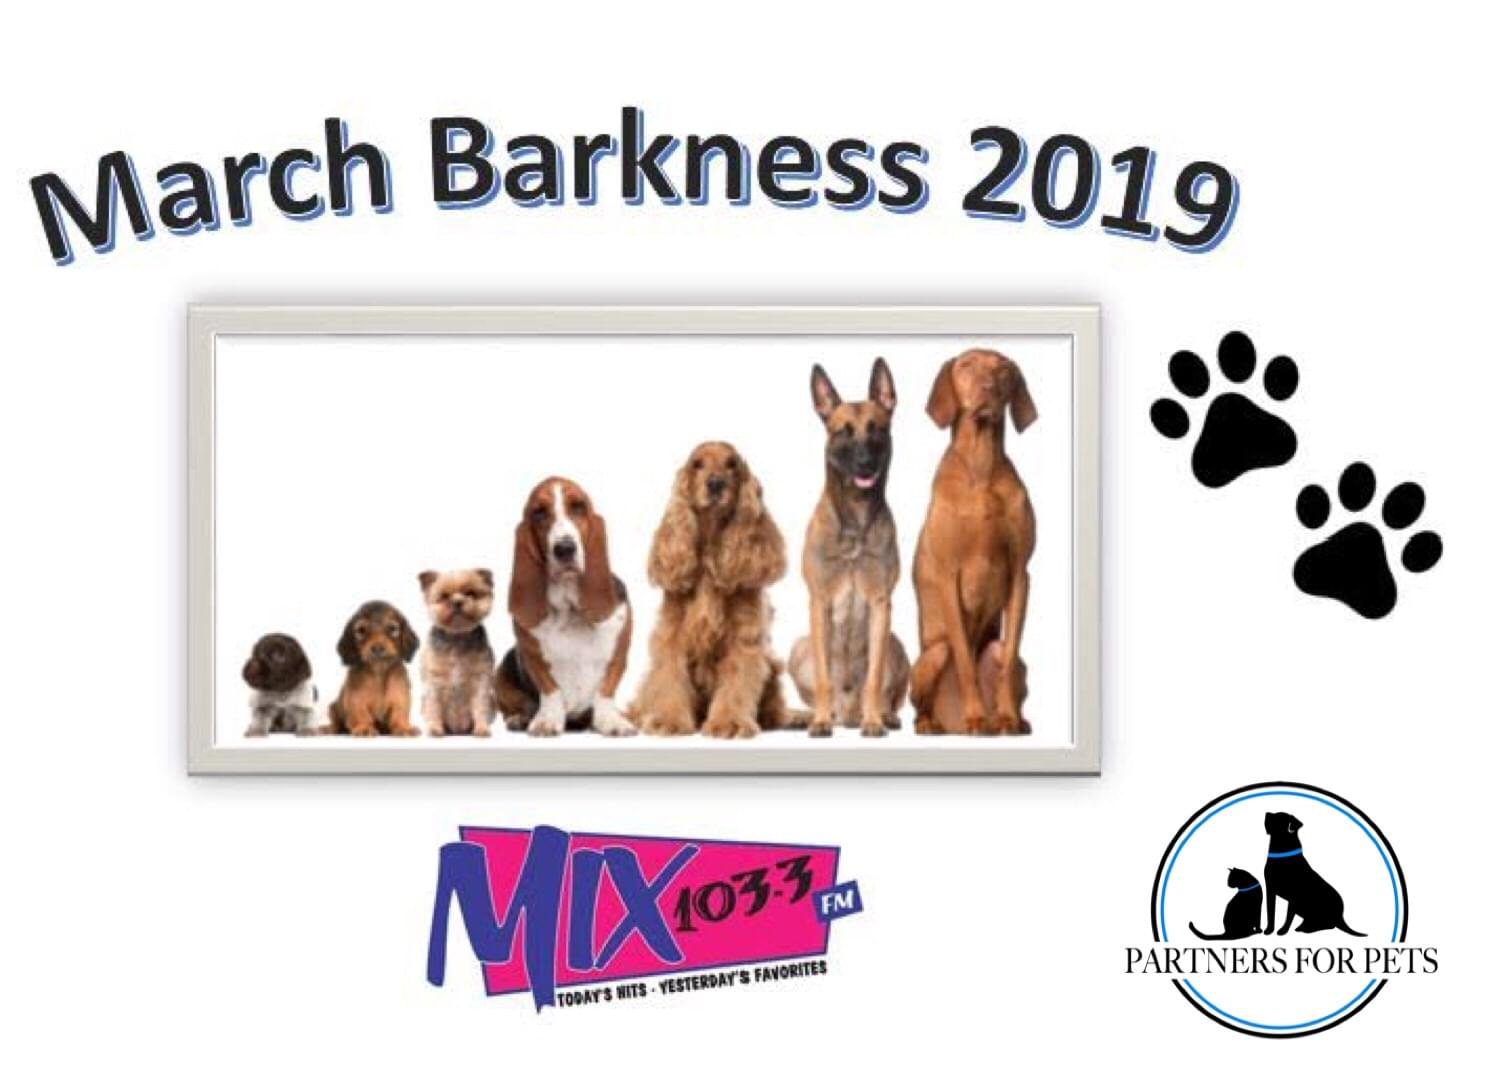 MARCH BARKNESS 2019